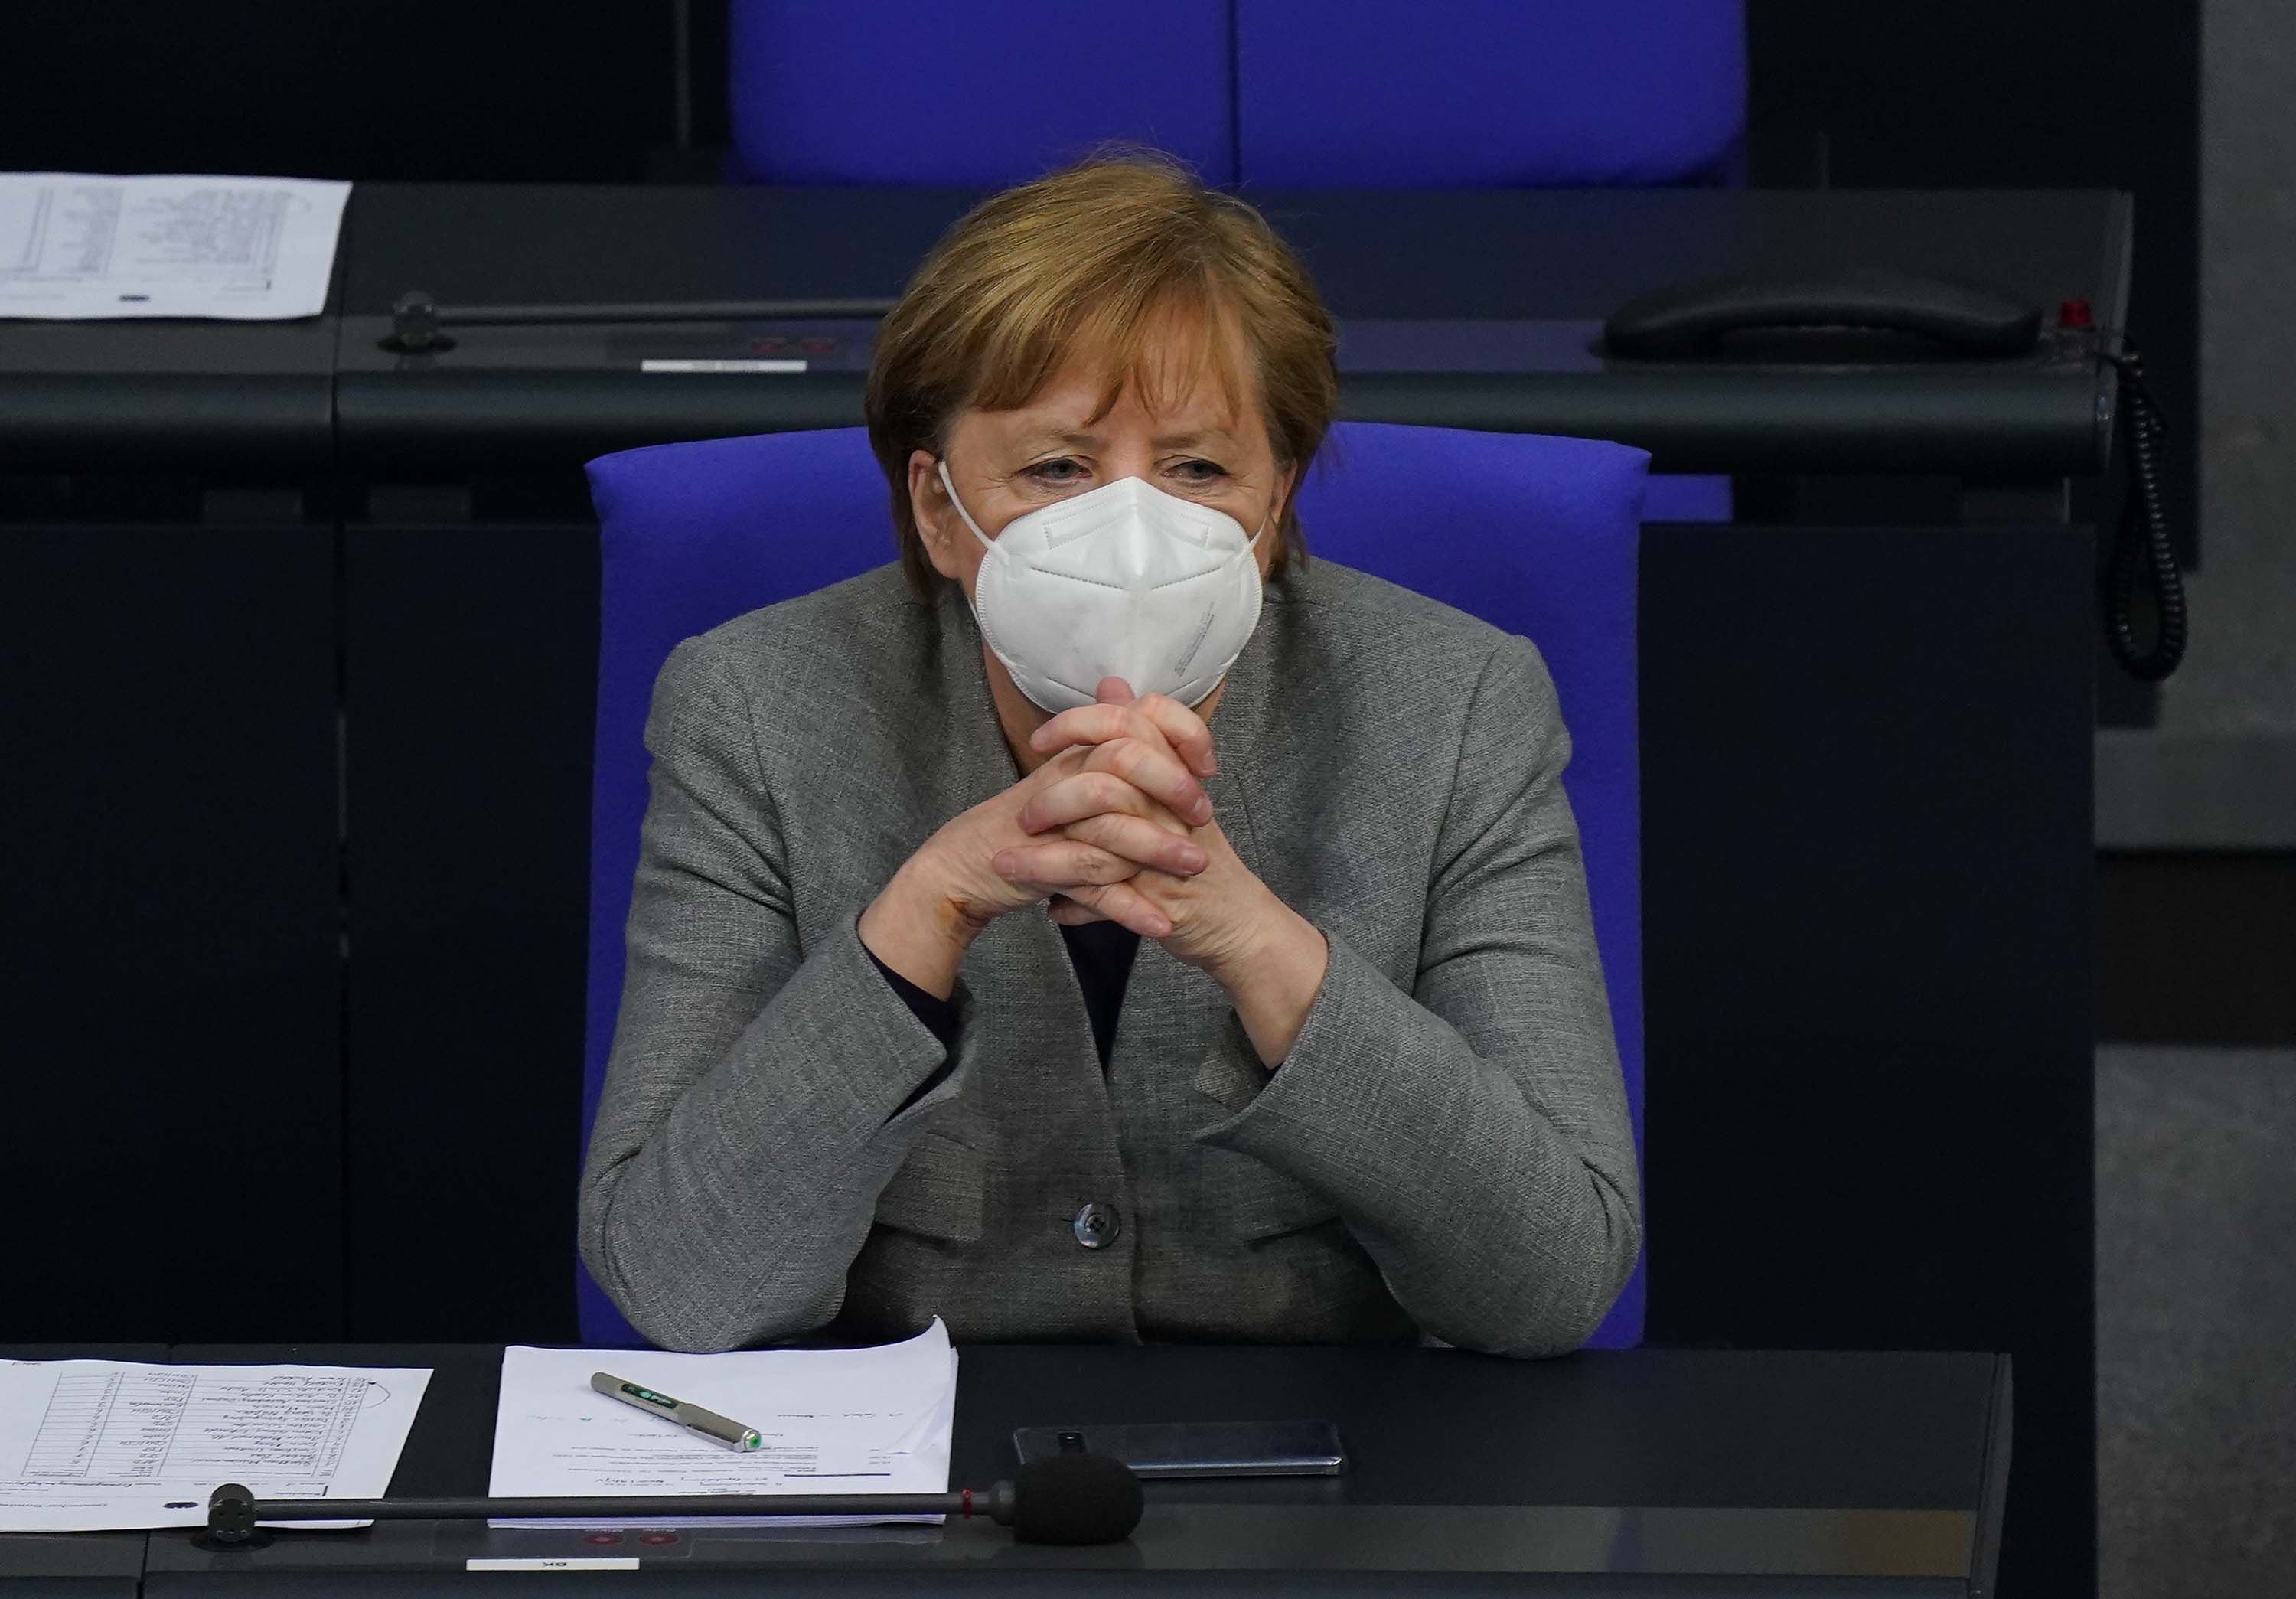 German Chancellor Angela Merkel attends debates at the Bundestag on Germany's recent rollout of coronavirus vaccinations on January 13, in Berlin, Germany.